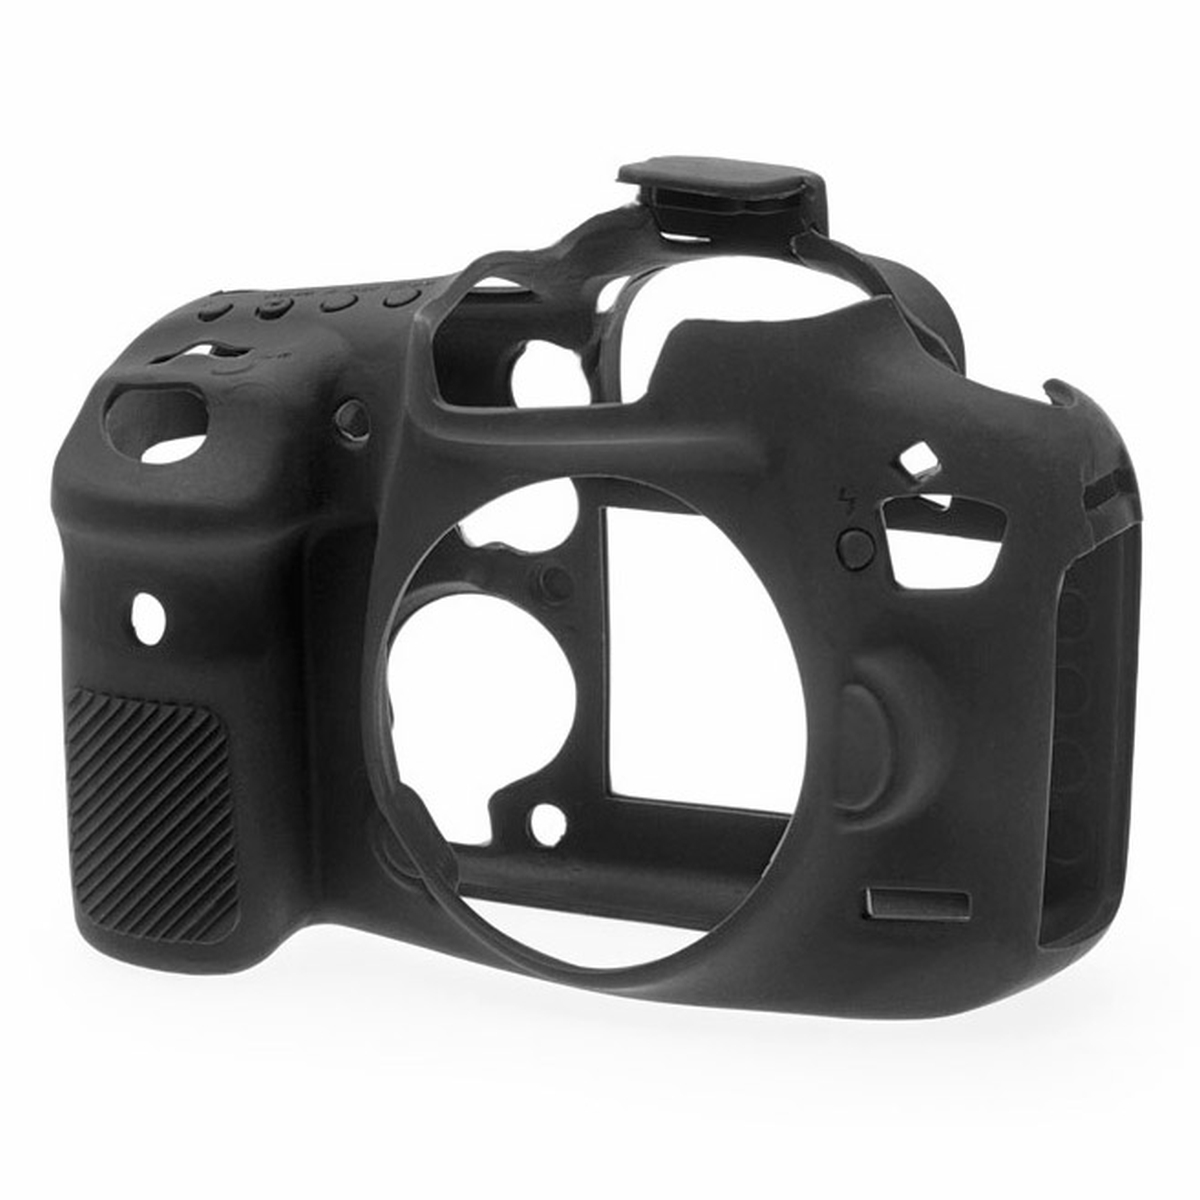 Walimex pro easyCover for Canon 7D Mark II